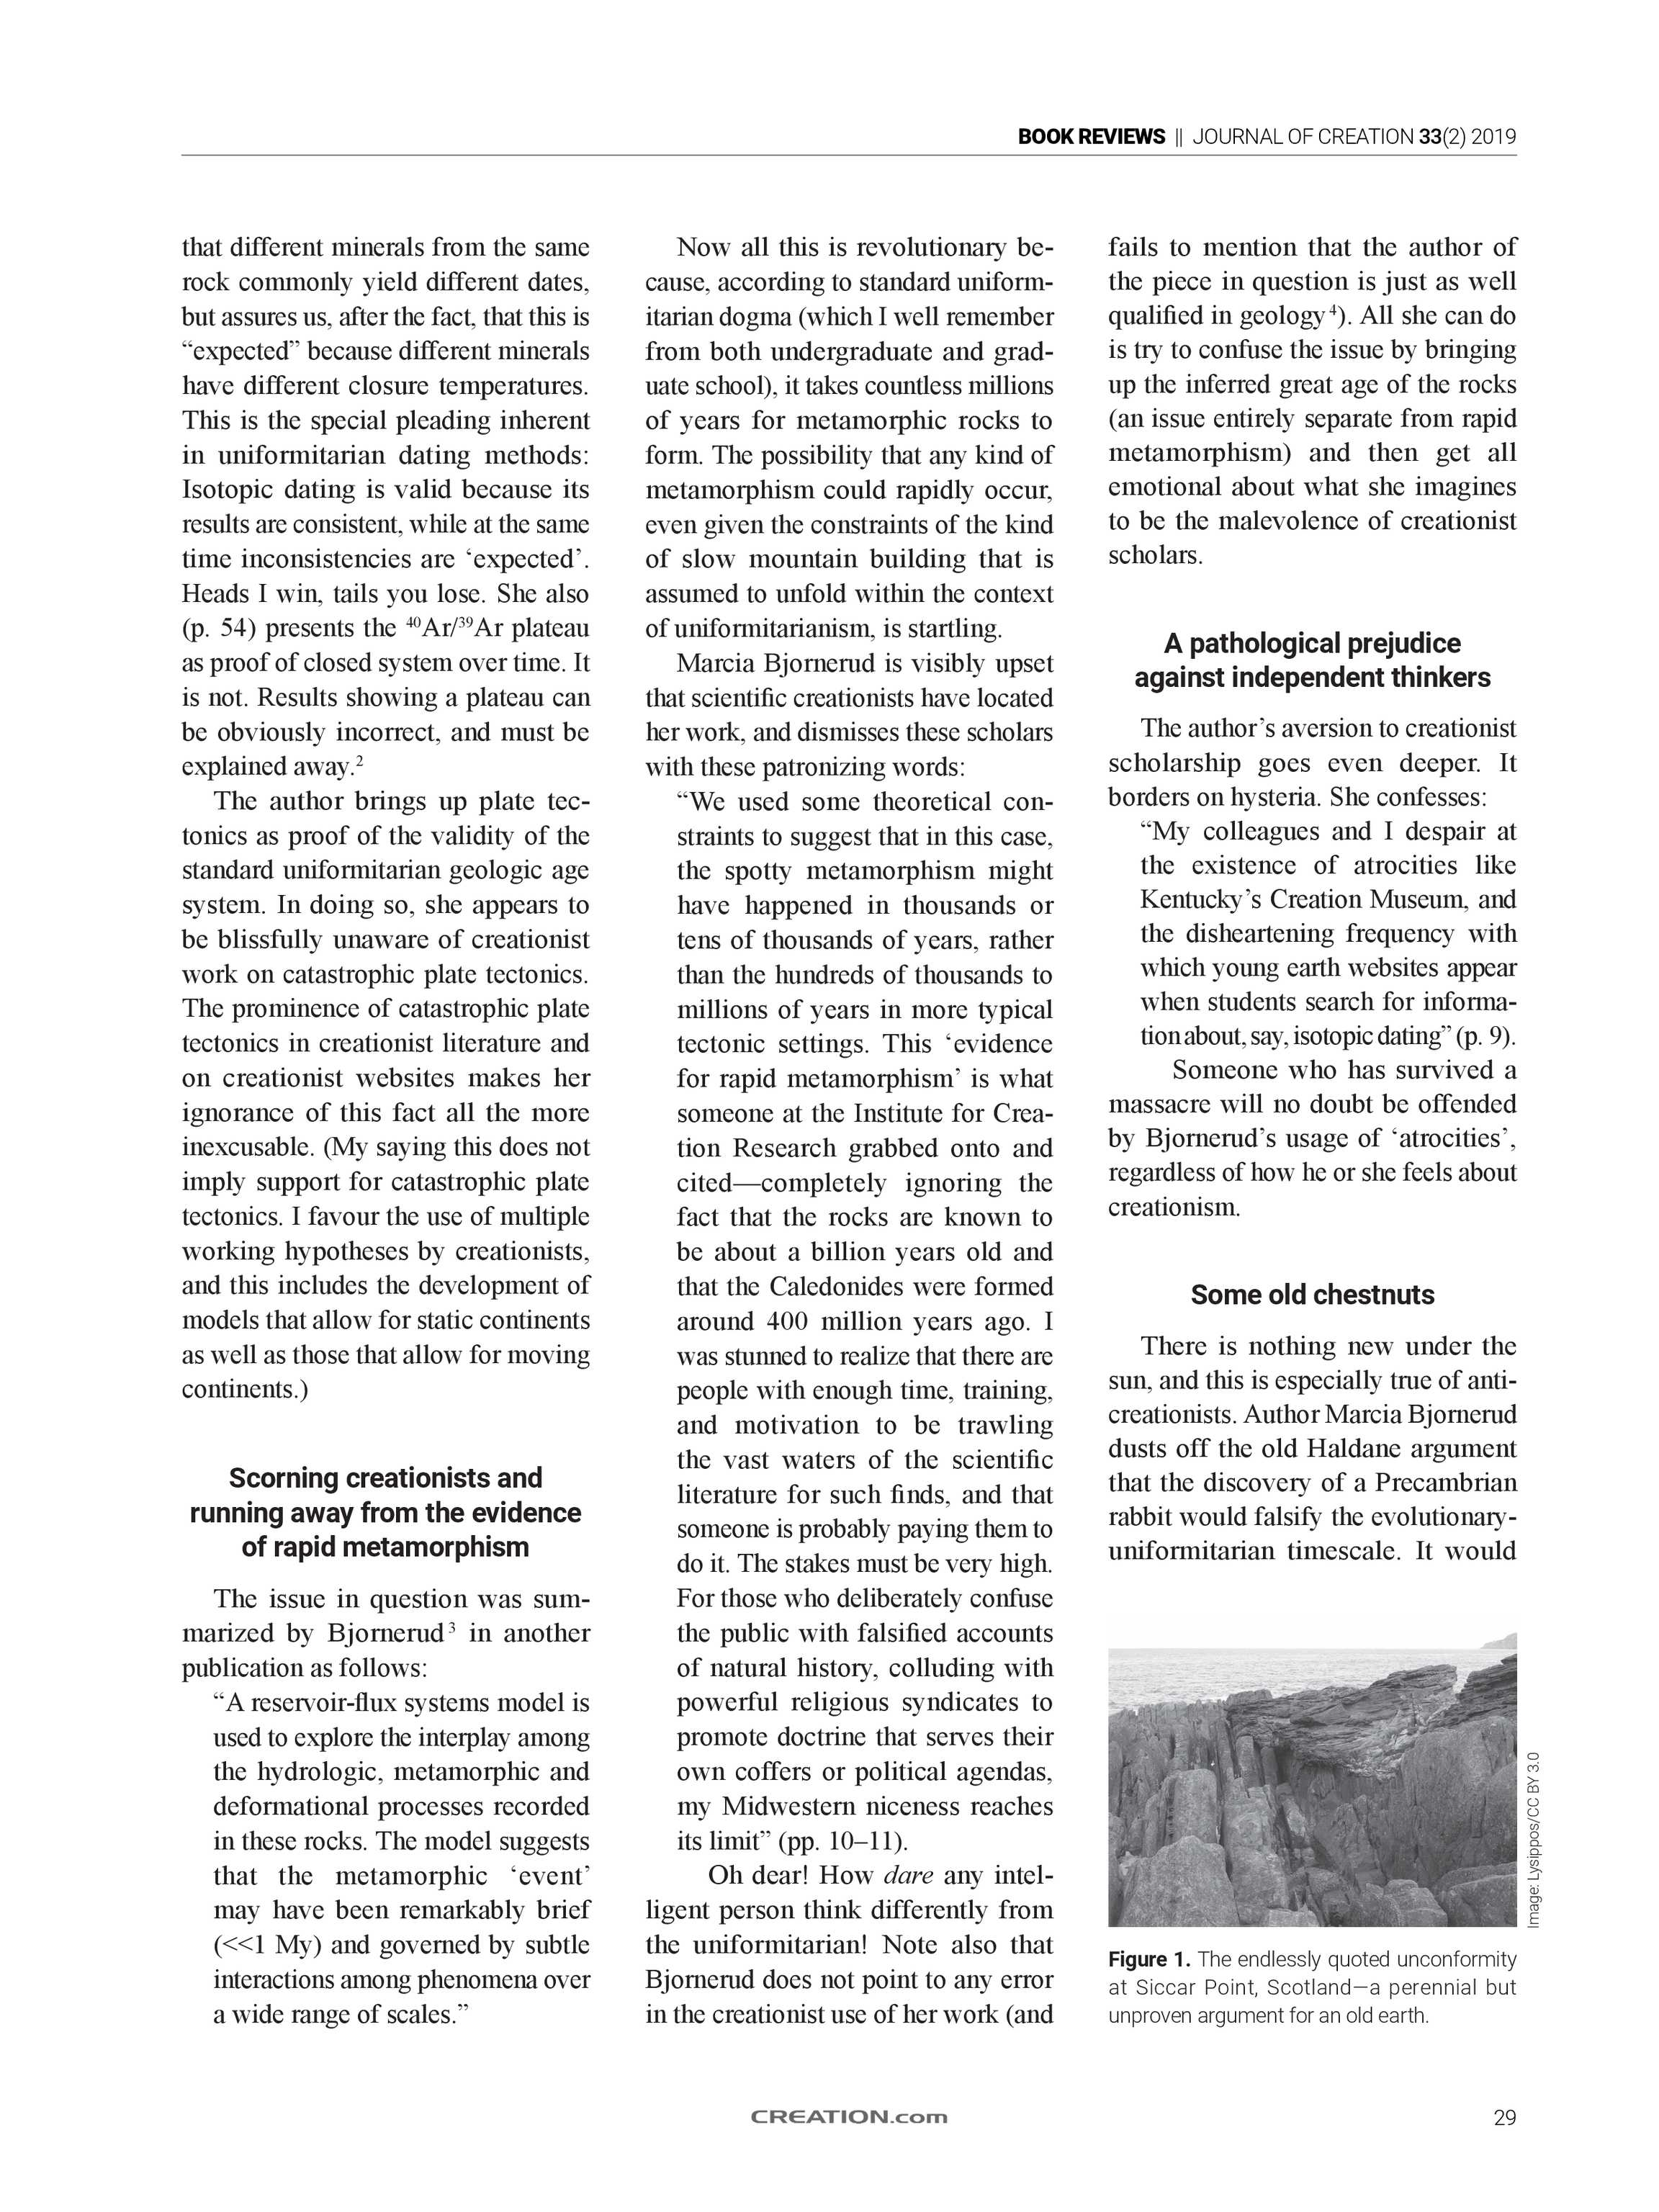 Journal of Creation - 2019 Volume 33 Issue 2 - page 30